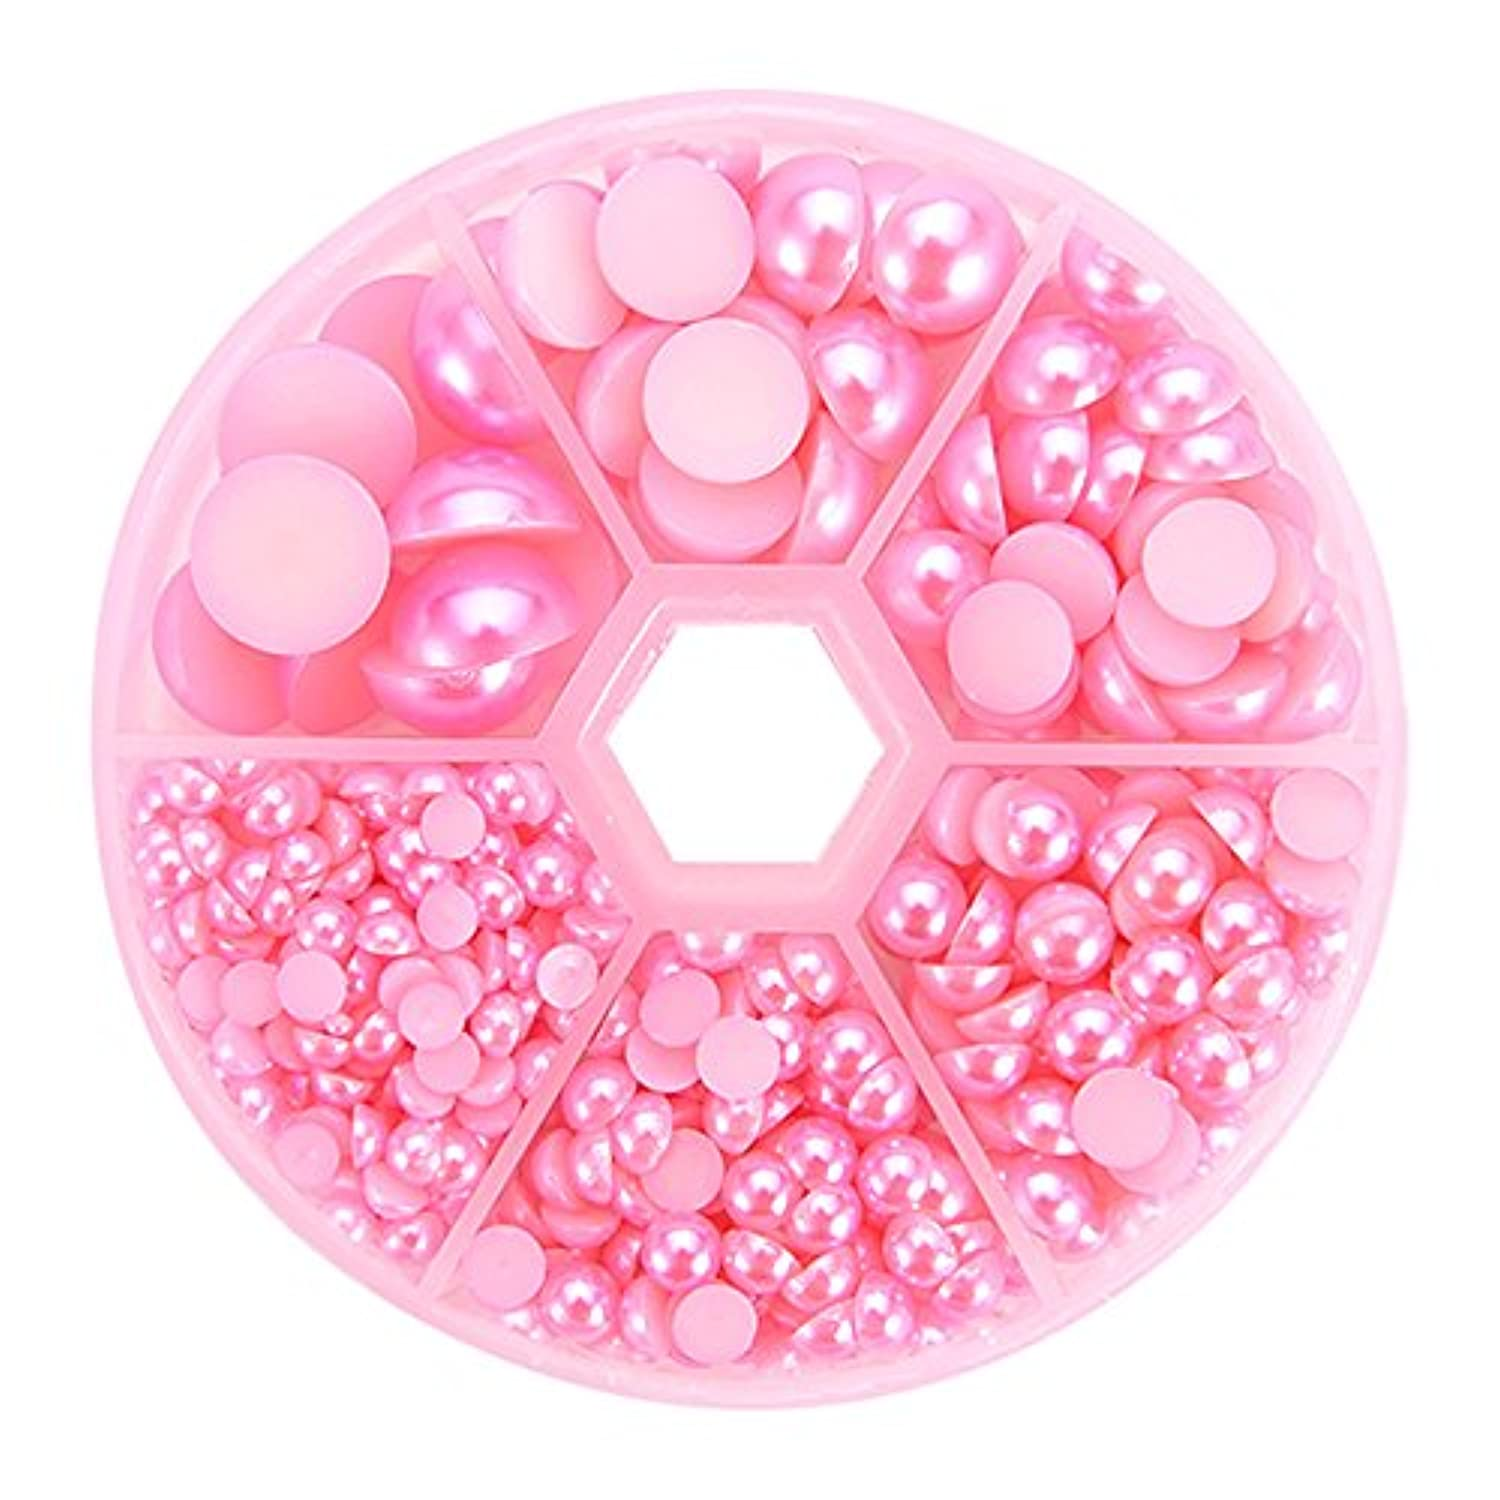 PandaHall Elite About 690 Pcs Pink Flat Back Half Round Pearl Cabochon Diameter 4-12mm for Nail Craft DIY Decoration